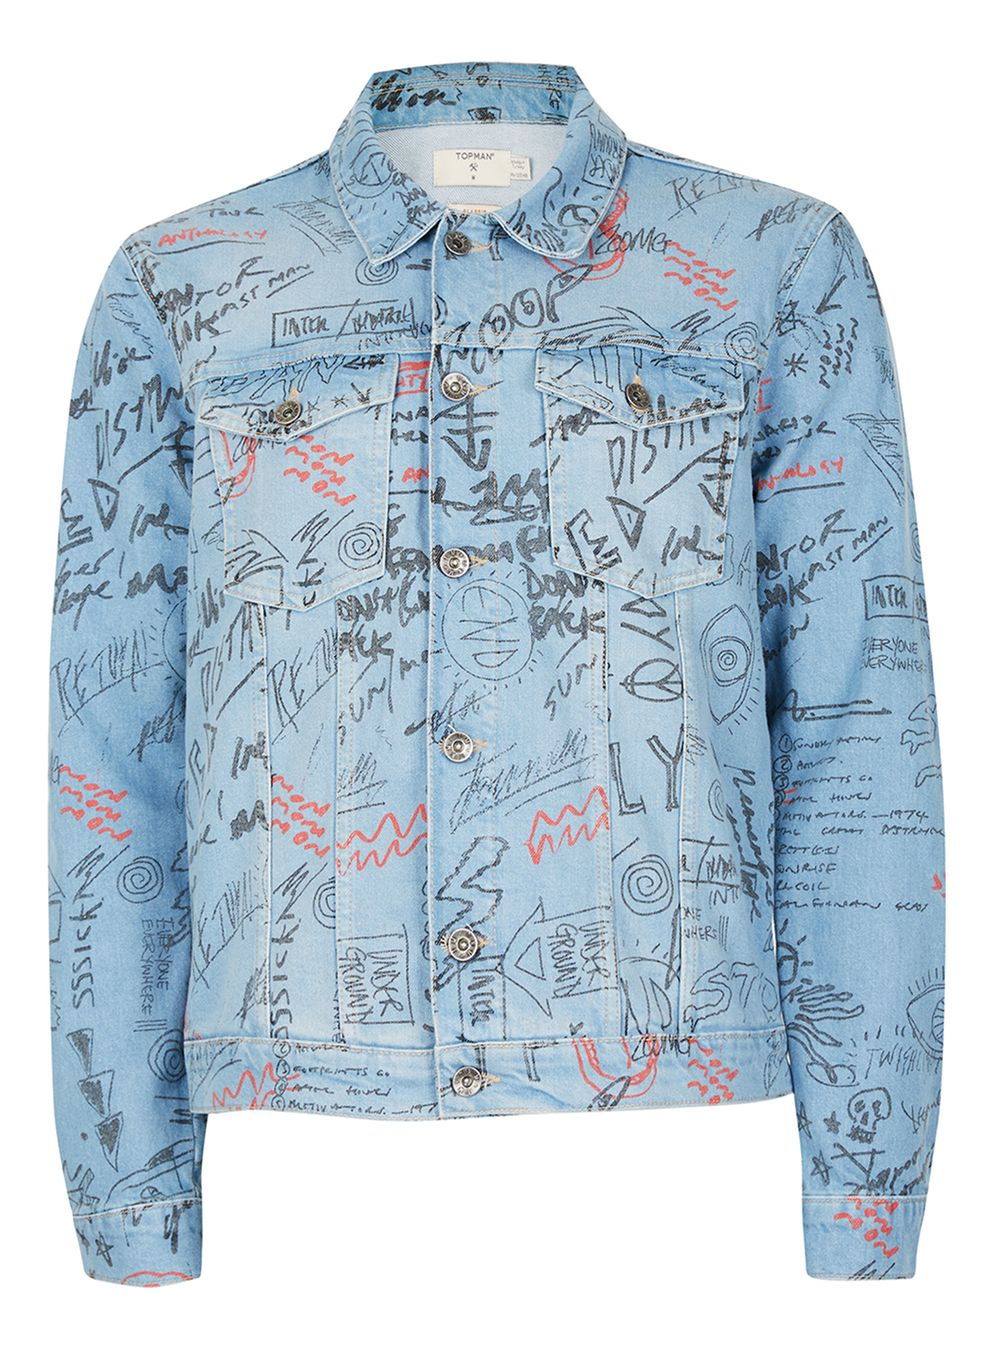 top-man-doodle-denim-jacket.jpg